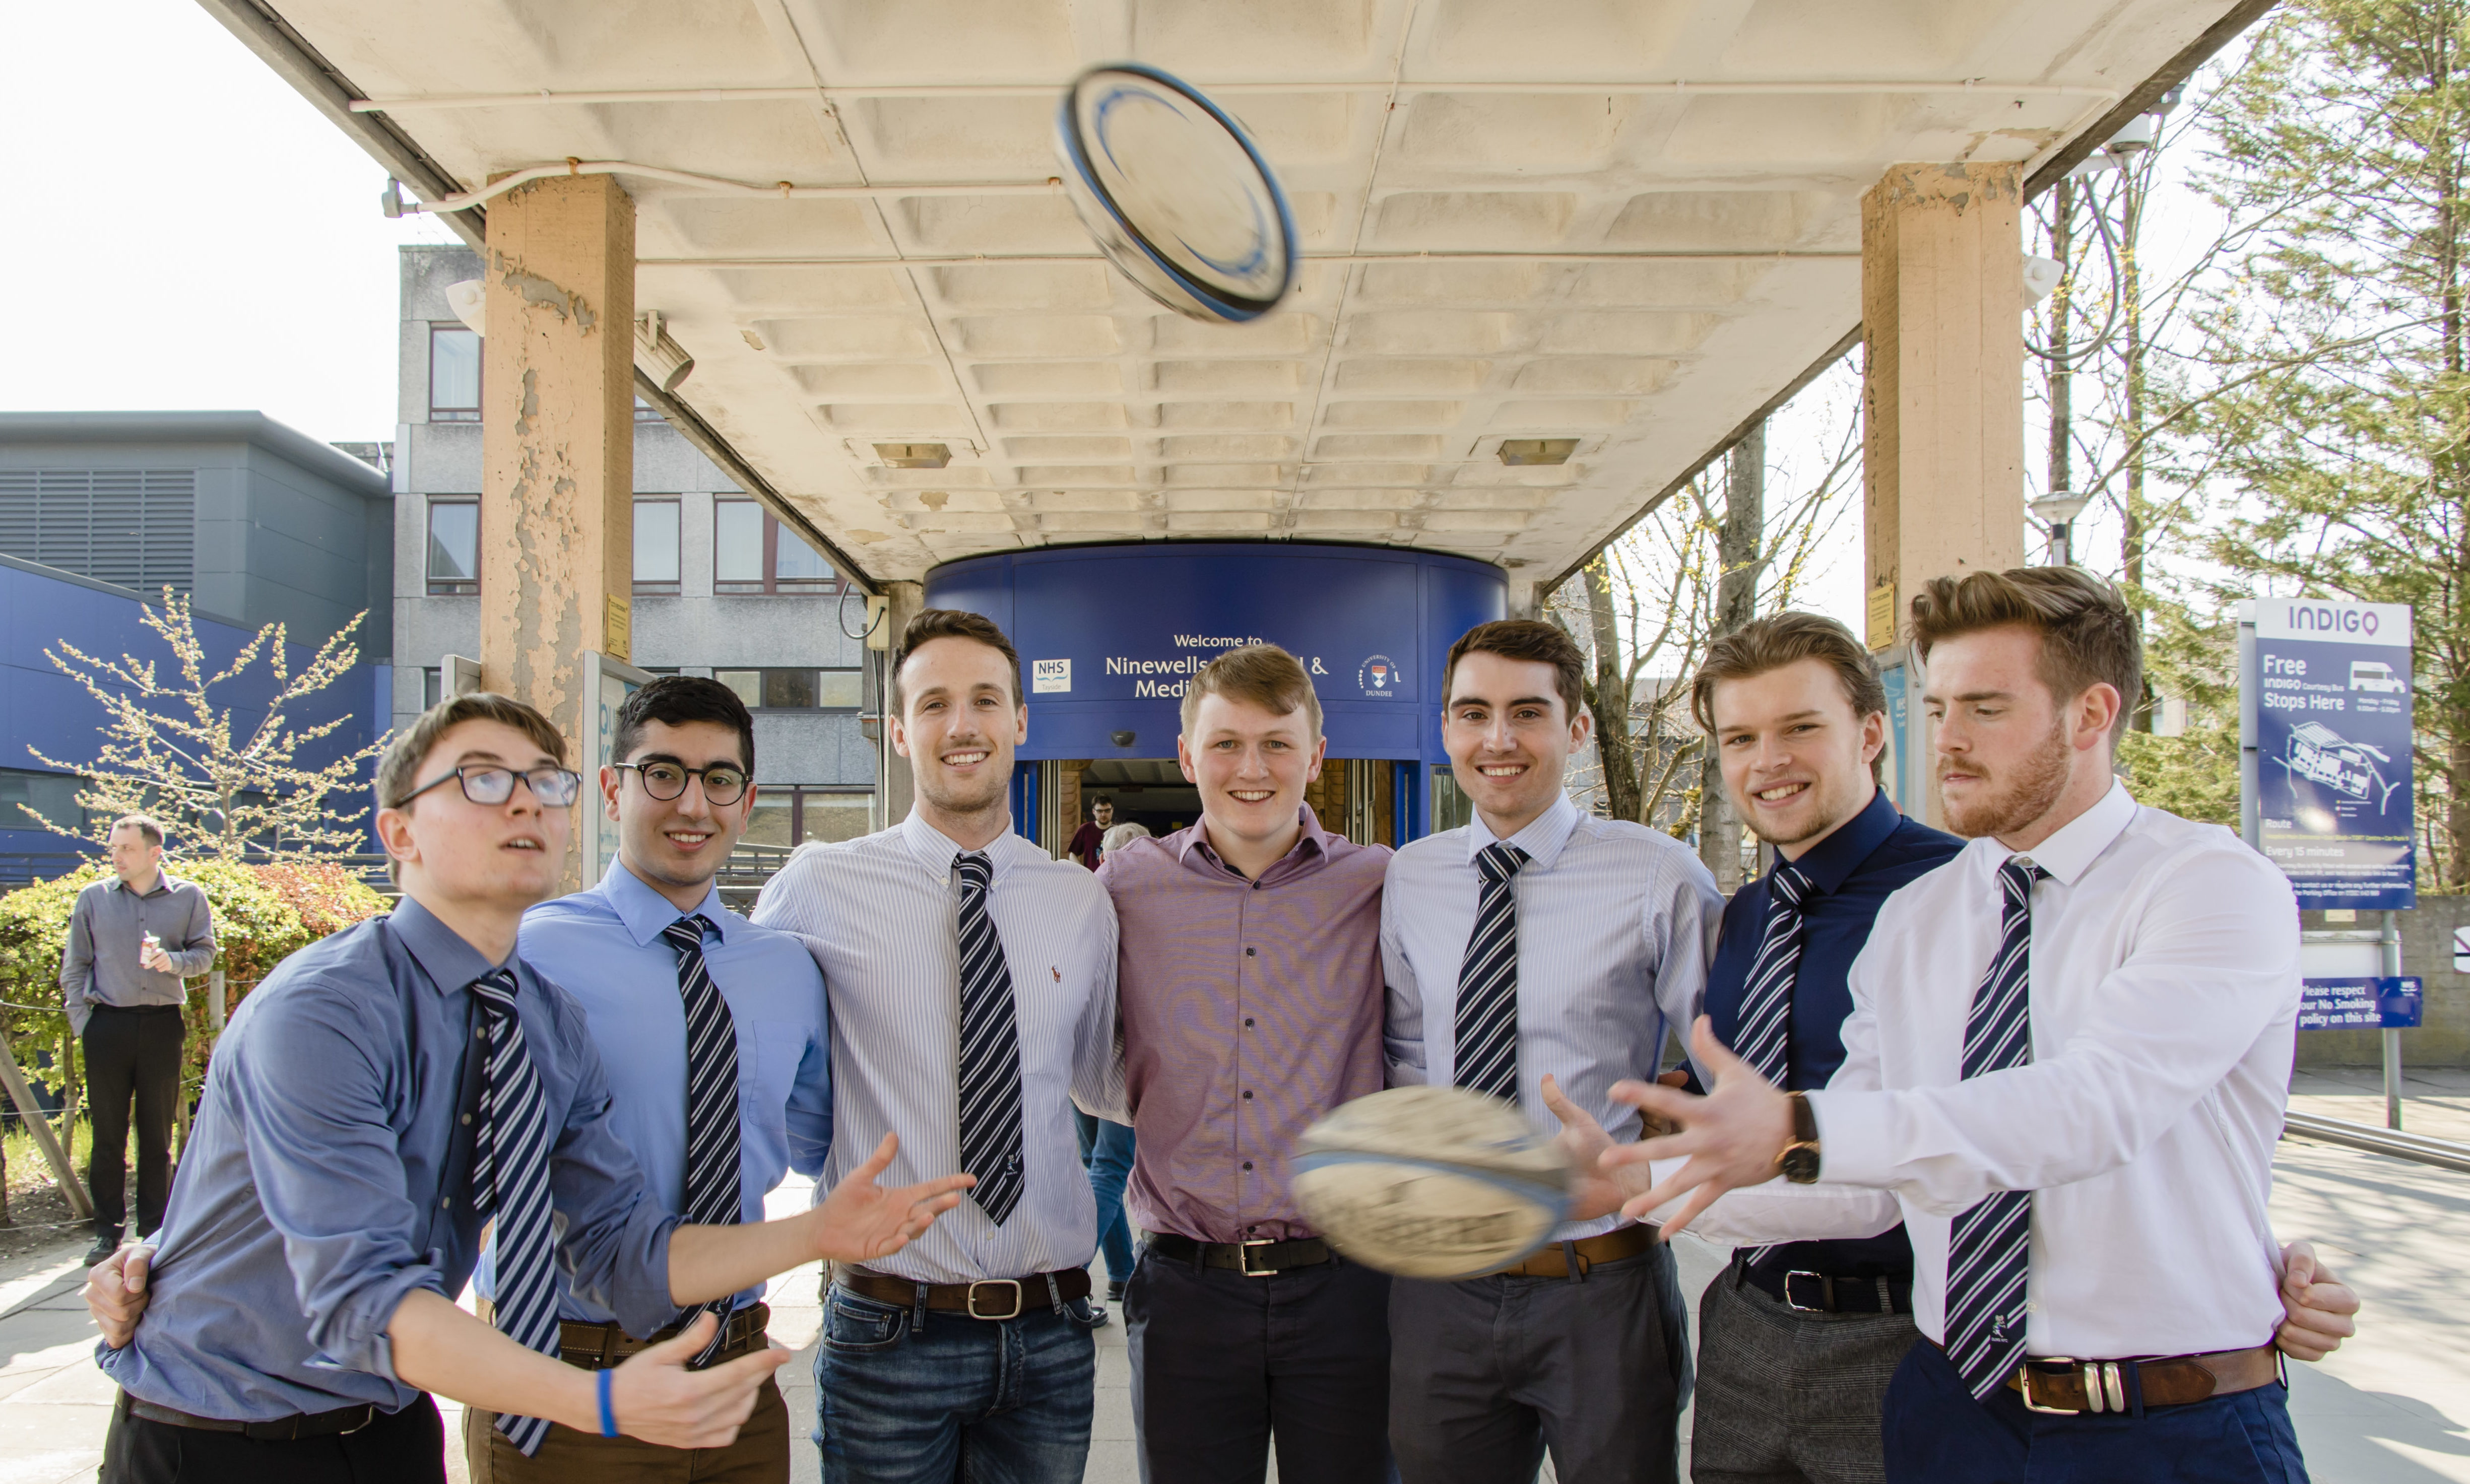 The Dundee University Medics are heading to Murrayfield.